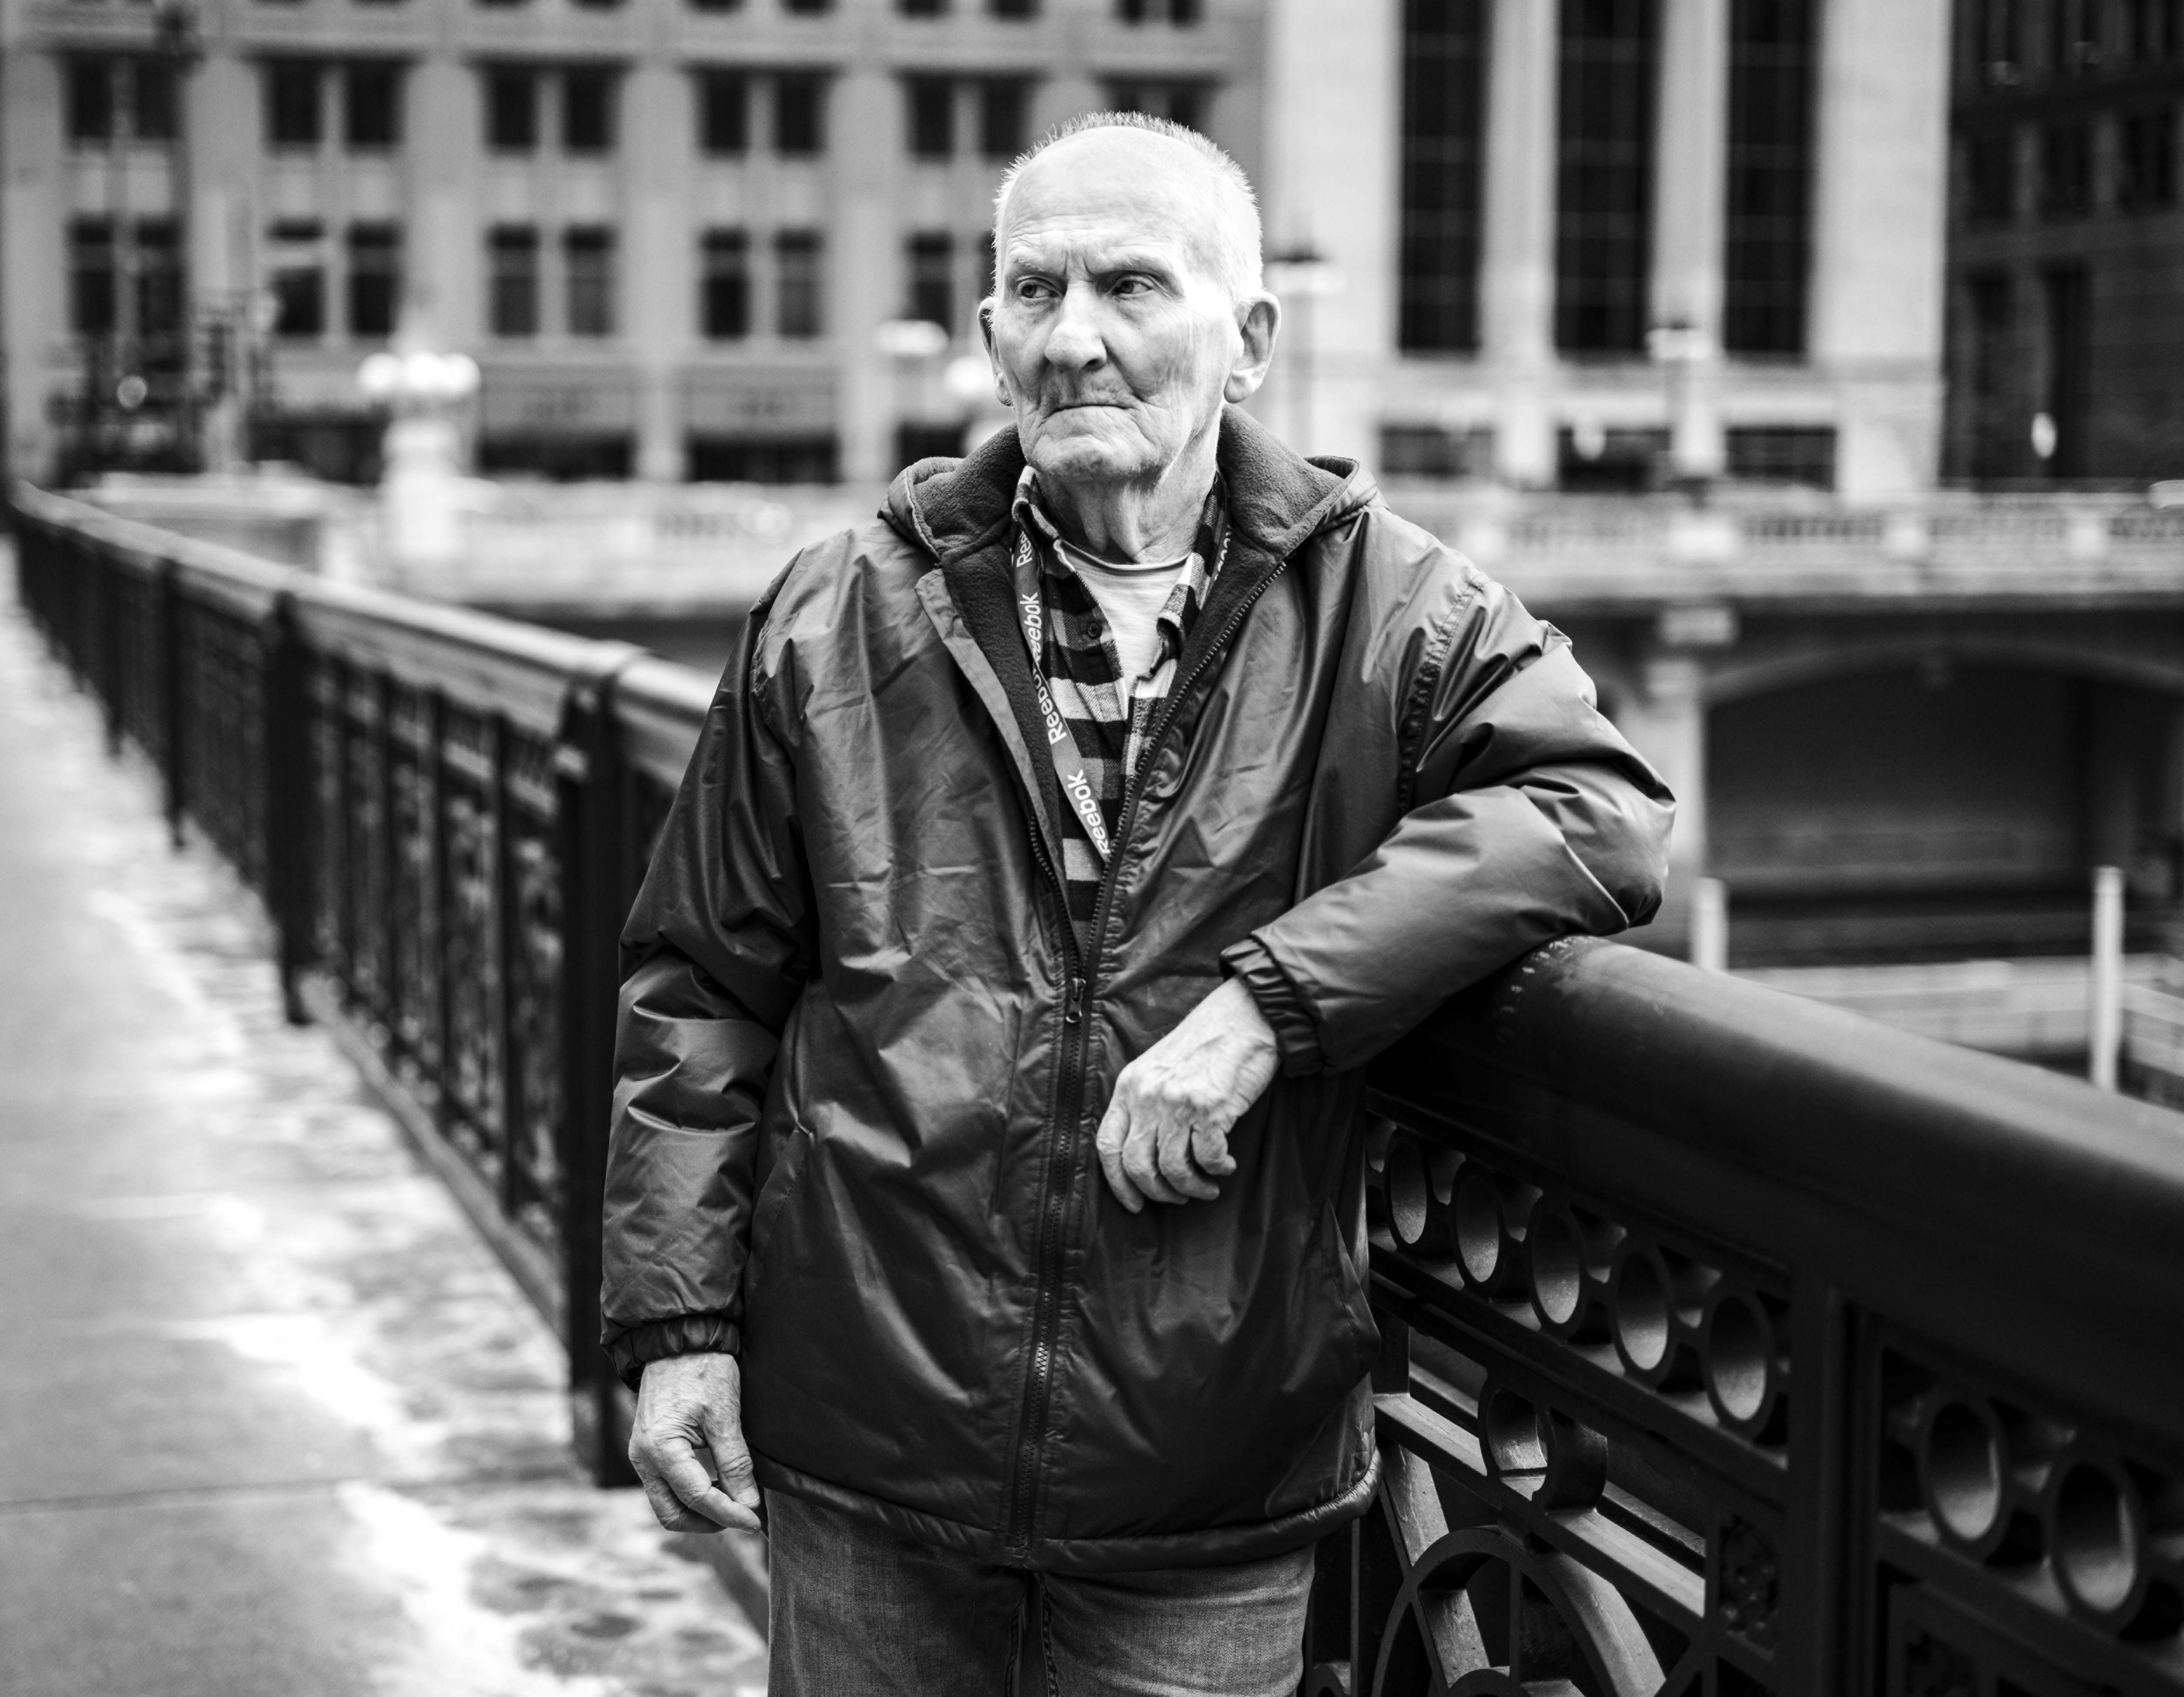 You'll see him on TV, eventually. A documentary film featuring Chester Weger, paroled after serving six decades for murder, is in the works. Much of the footage was supplied by La Salle native David Raccuglia, who spoke with and photographed Weger after release.